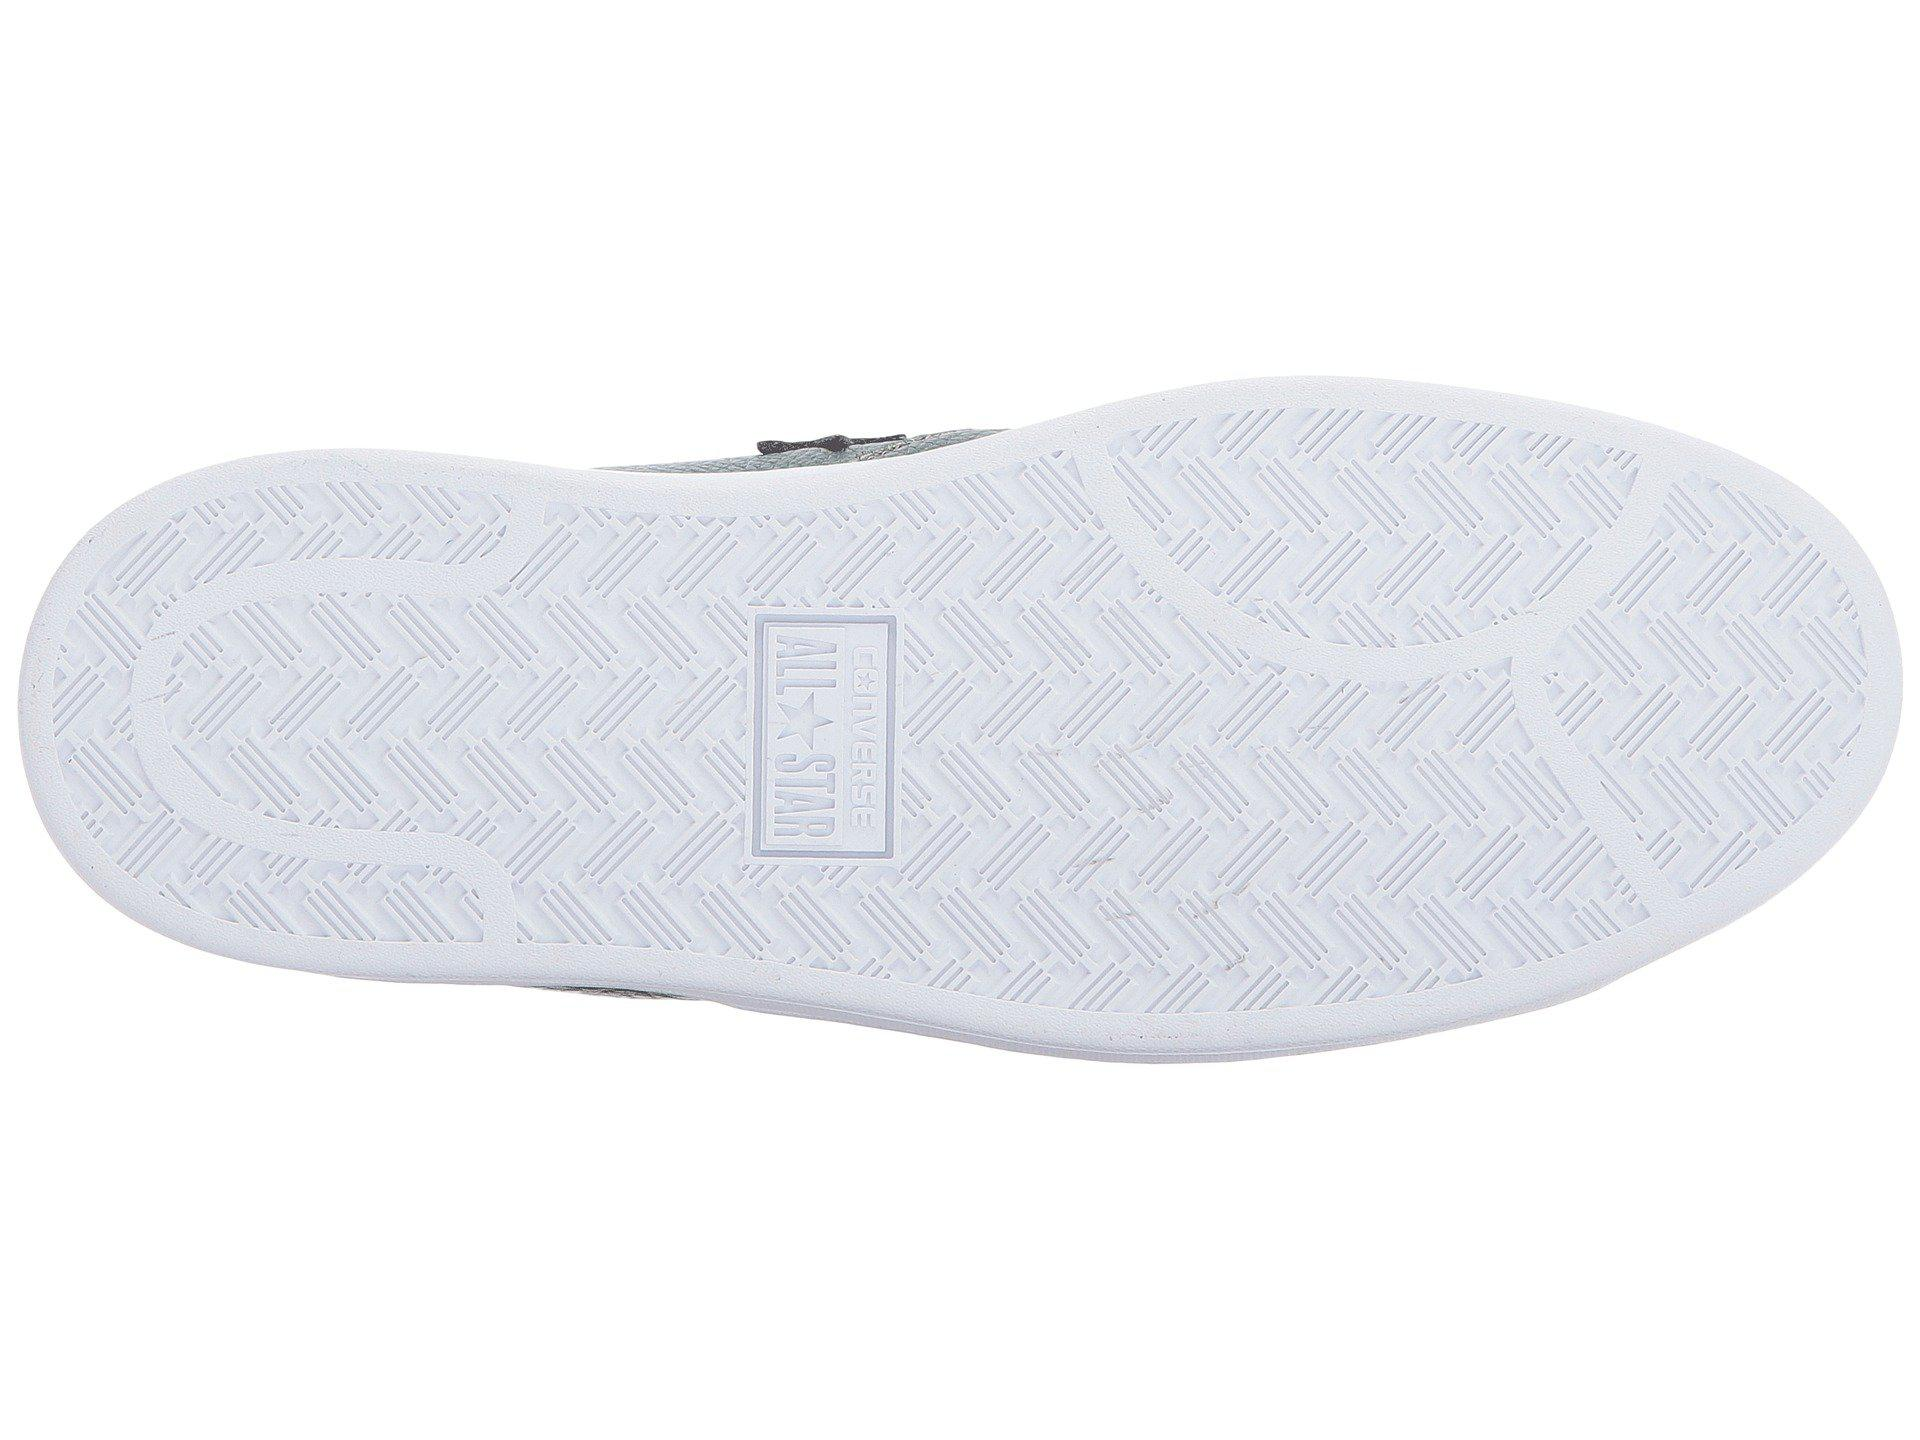 7714159ba83 Lyst - Converse Pro Leather Lp Iridescent Leather Ox in White